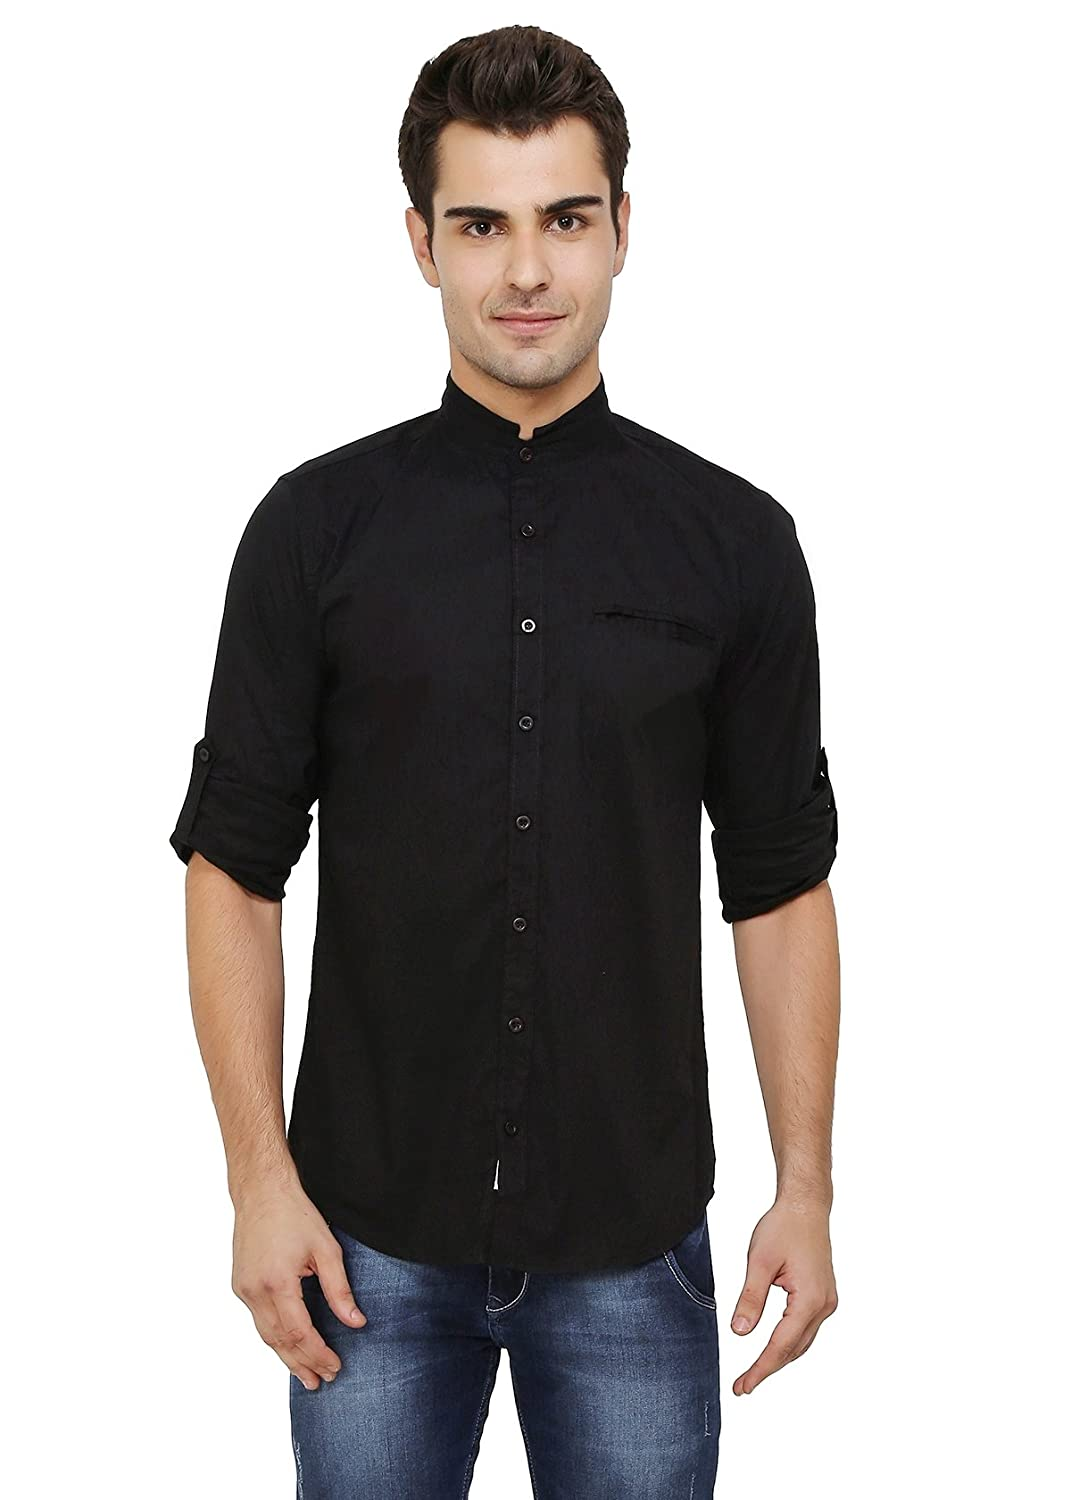 TALLA S(Chest:39in). nick&jess - Negro Camisa Casual - Básico - Cuello Mao - Manga Larga - para Hombre